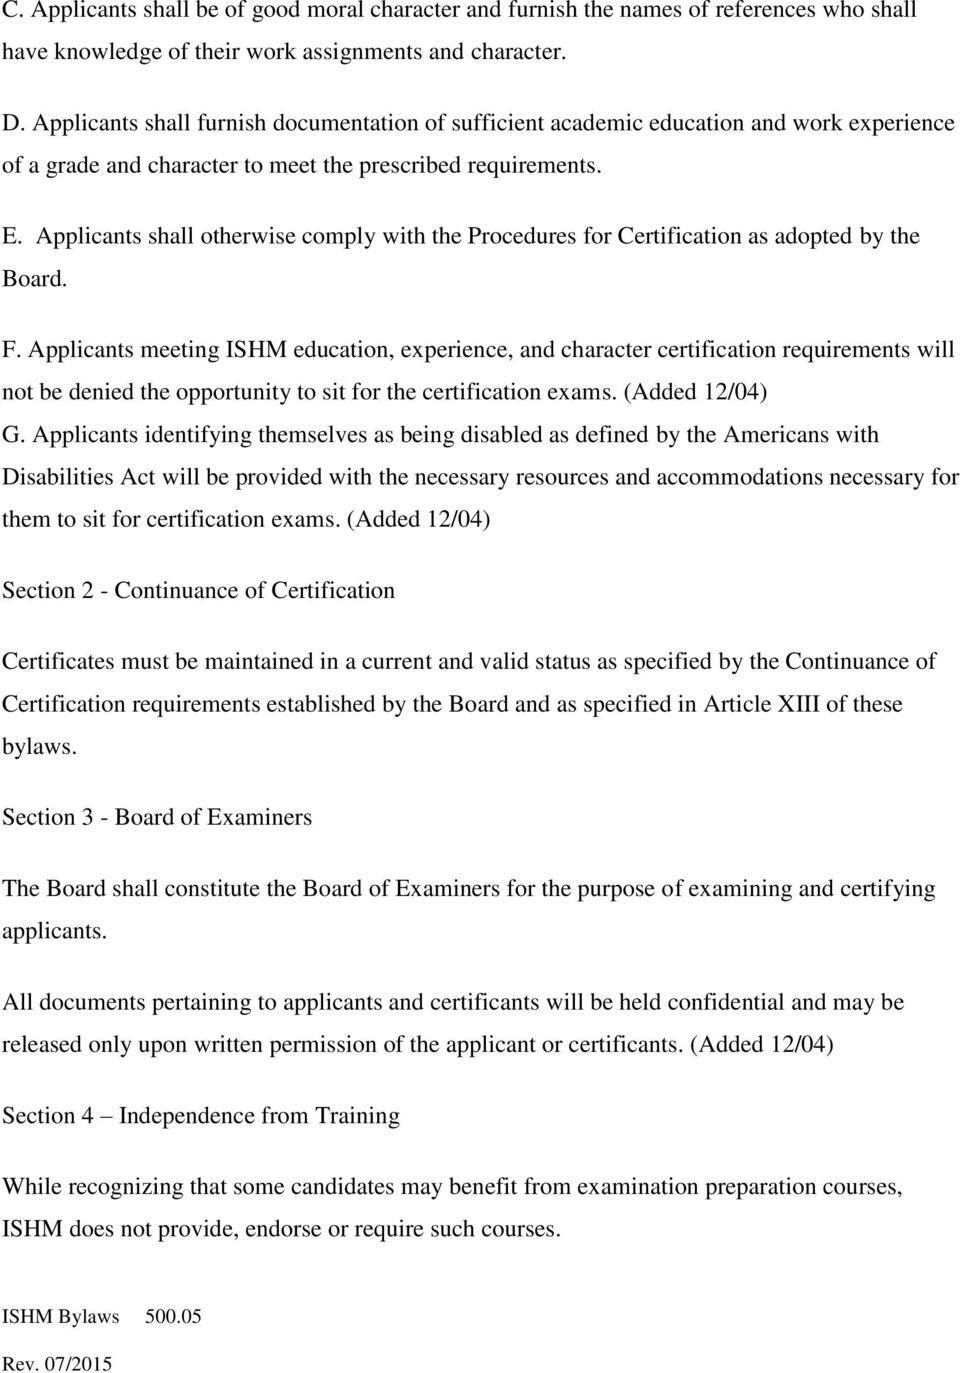 Applicants shall otherwise comply with the Procedures for Certification as adopted by the Board. F.